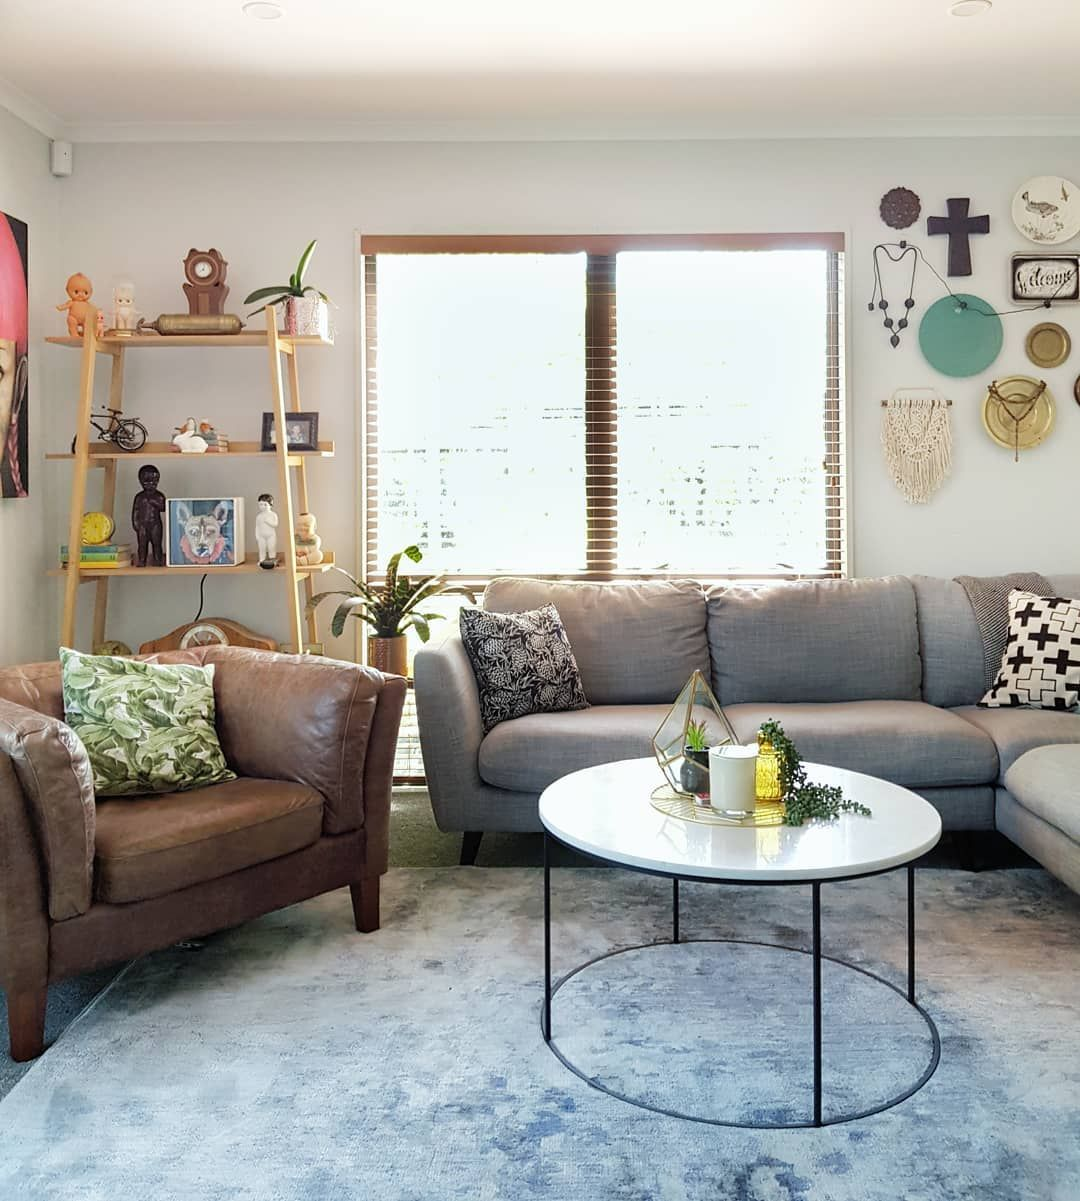 Small Townhouse Living Room Ideas: Eclectic Decor, Home Styling, Living Room Rug #homestyling